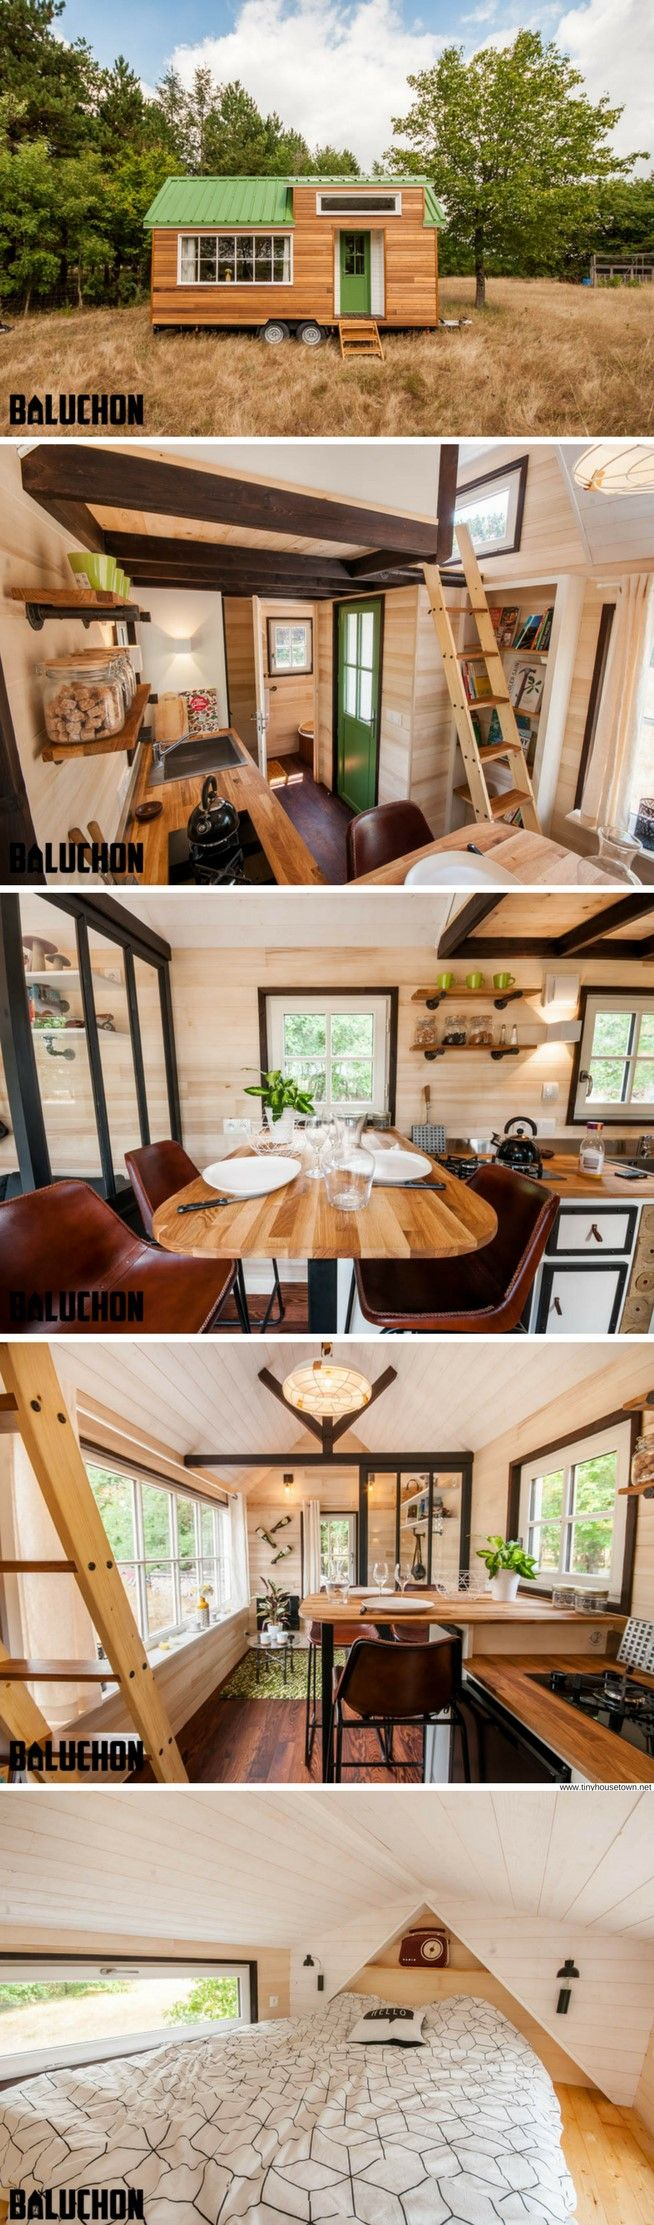 Wood profits the boheme tiny house from baluchon discover how